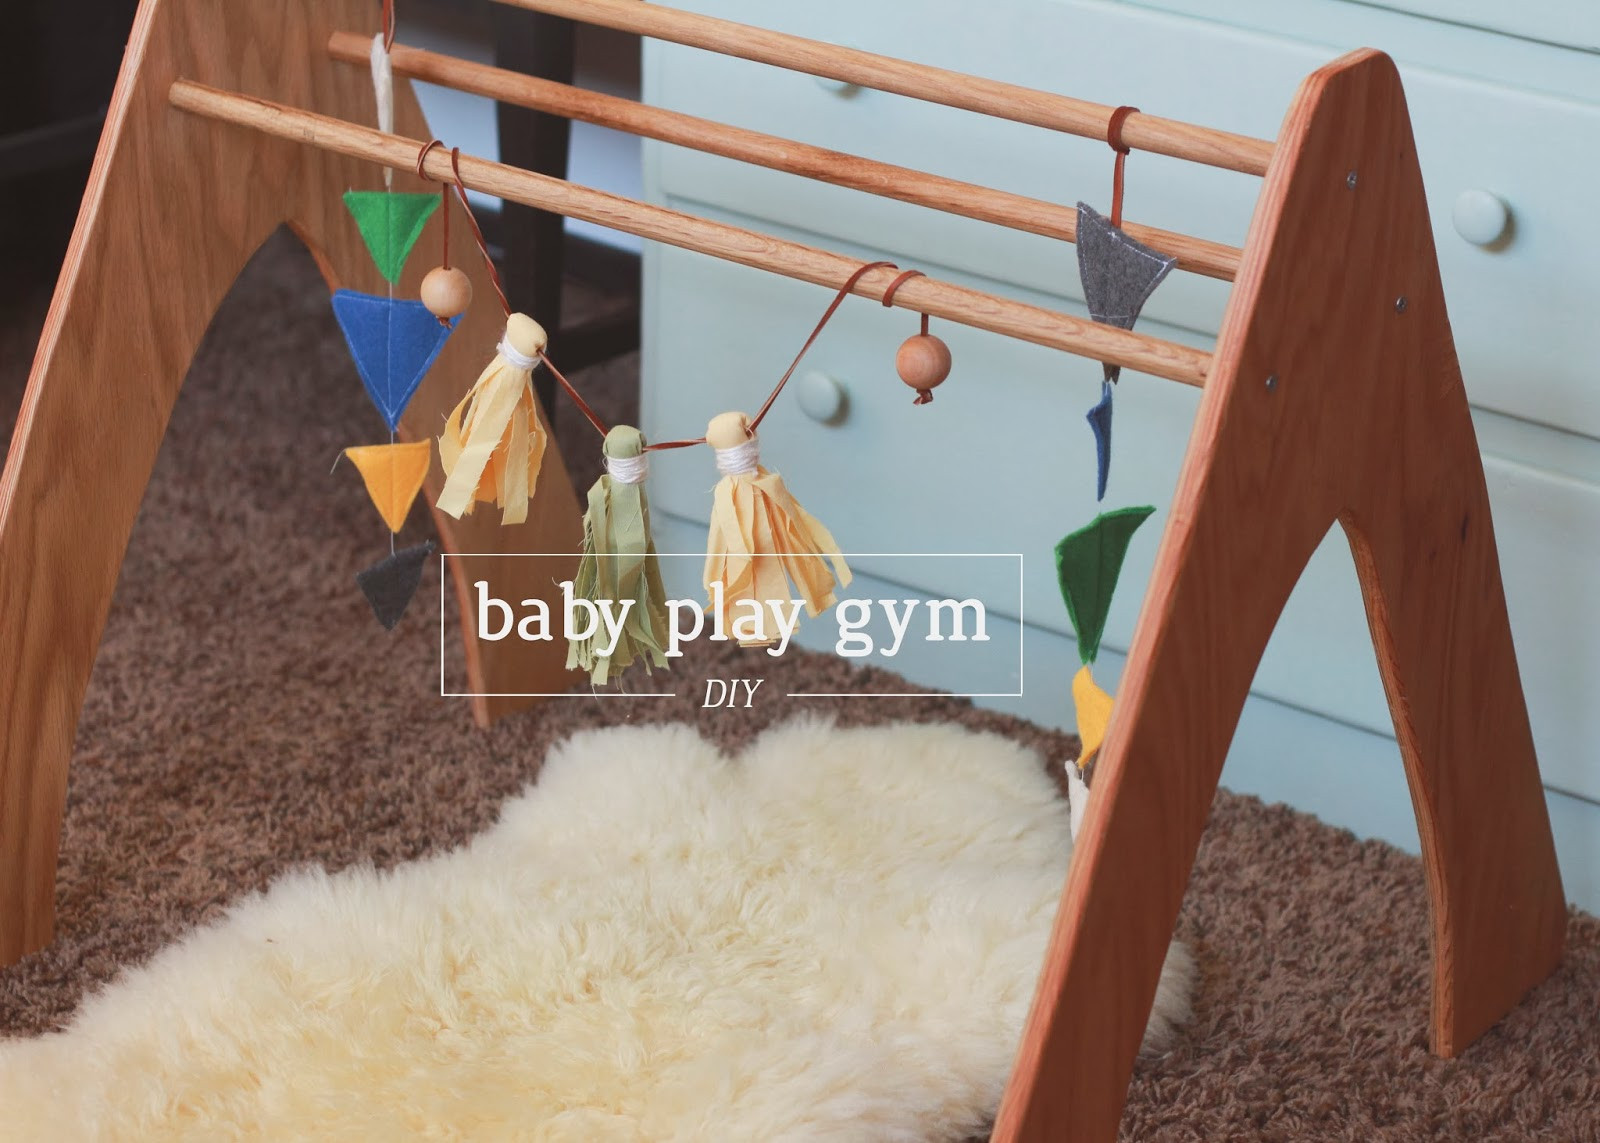 Best ideas about DIY Baby Gym . Save or Pin Nerd and Healthnut DIY Wooden Play Gym Now.